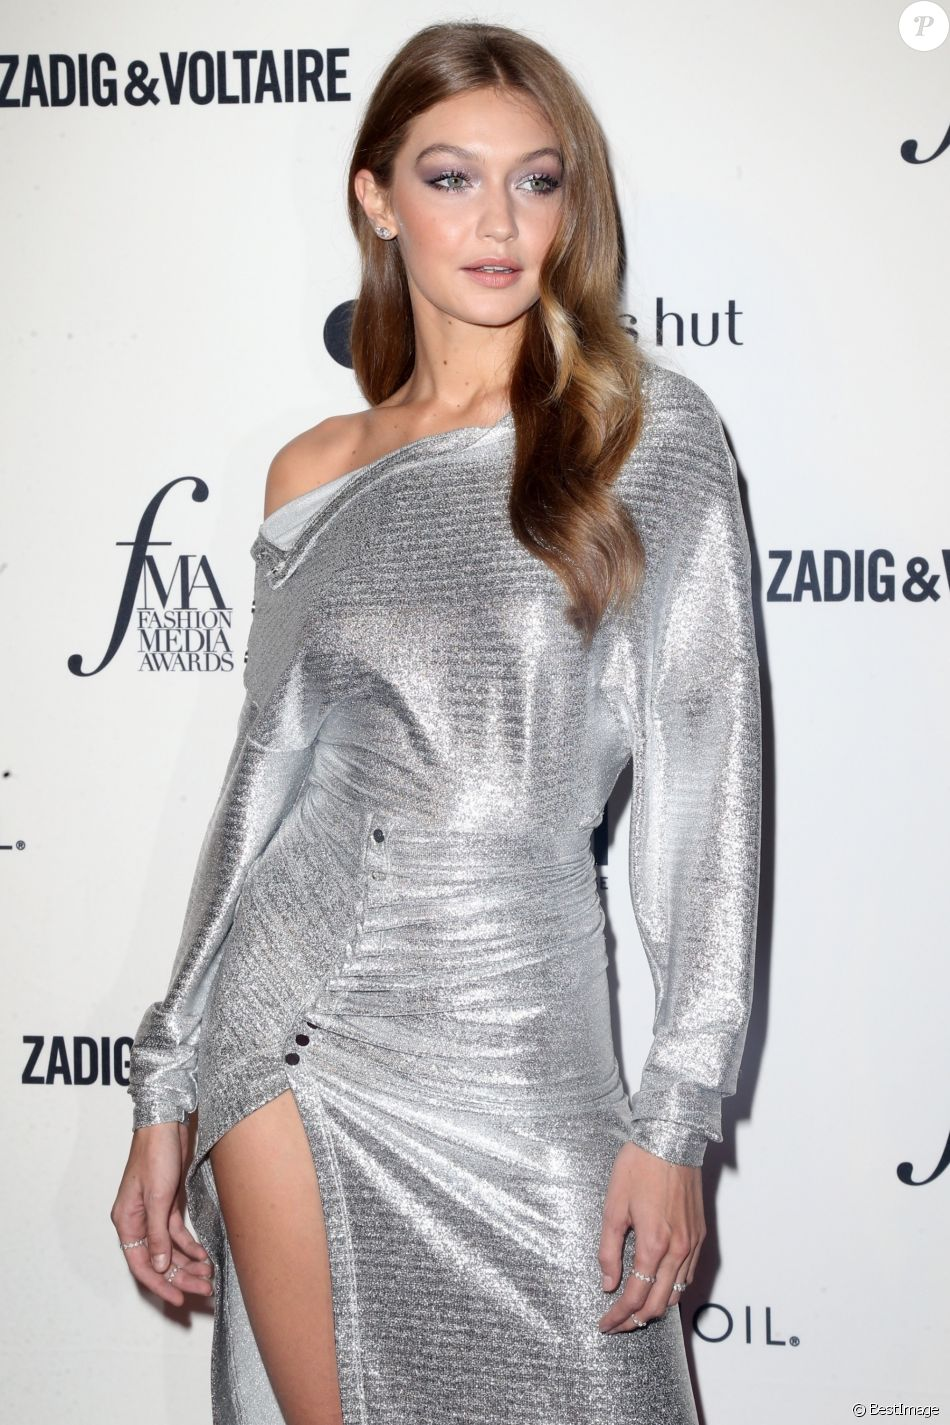 Gigi Hadid à la 6ème soirée annuelle Daily Front Row's Fashion Media Awards à l'hôtel Park Hyatt à New York, le 6 septembre 2018.